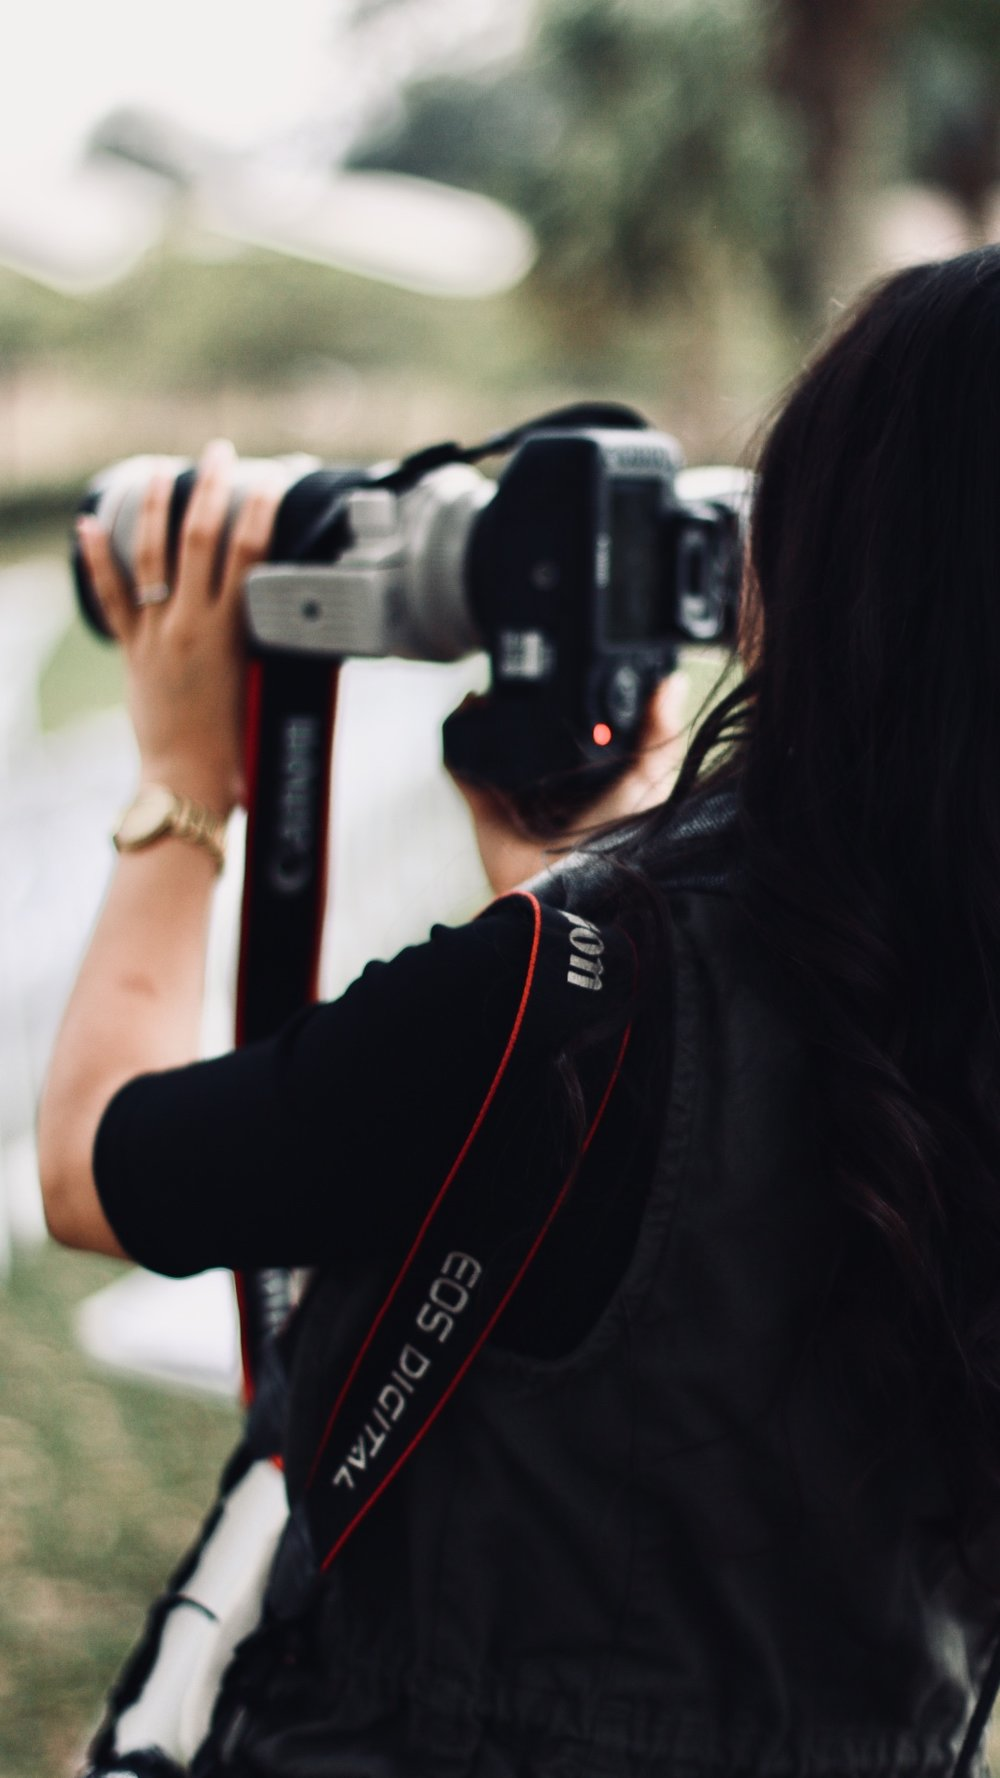 Christine Tran working as wedding photographer